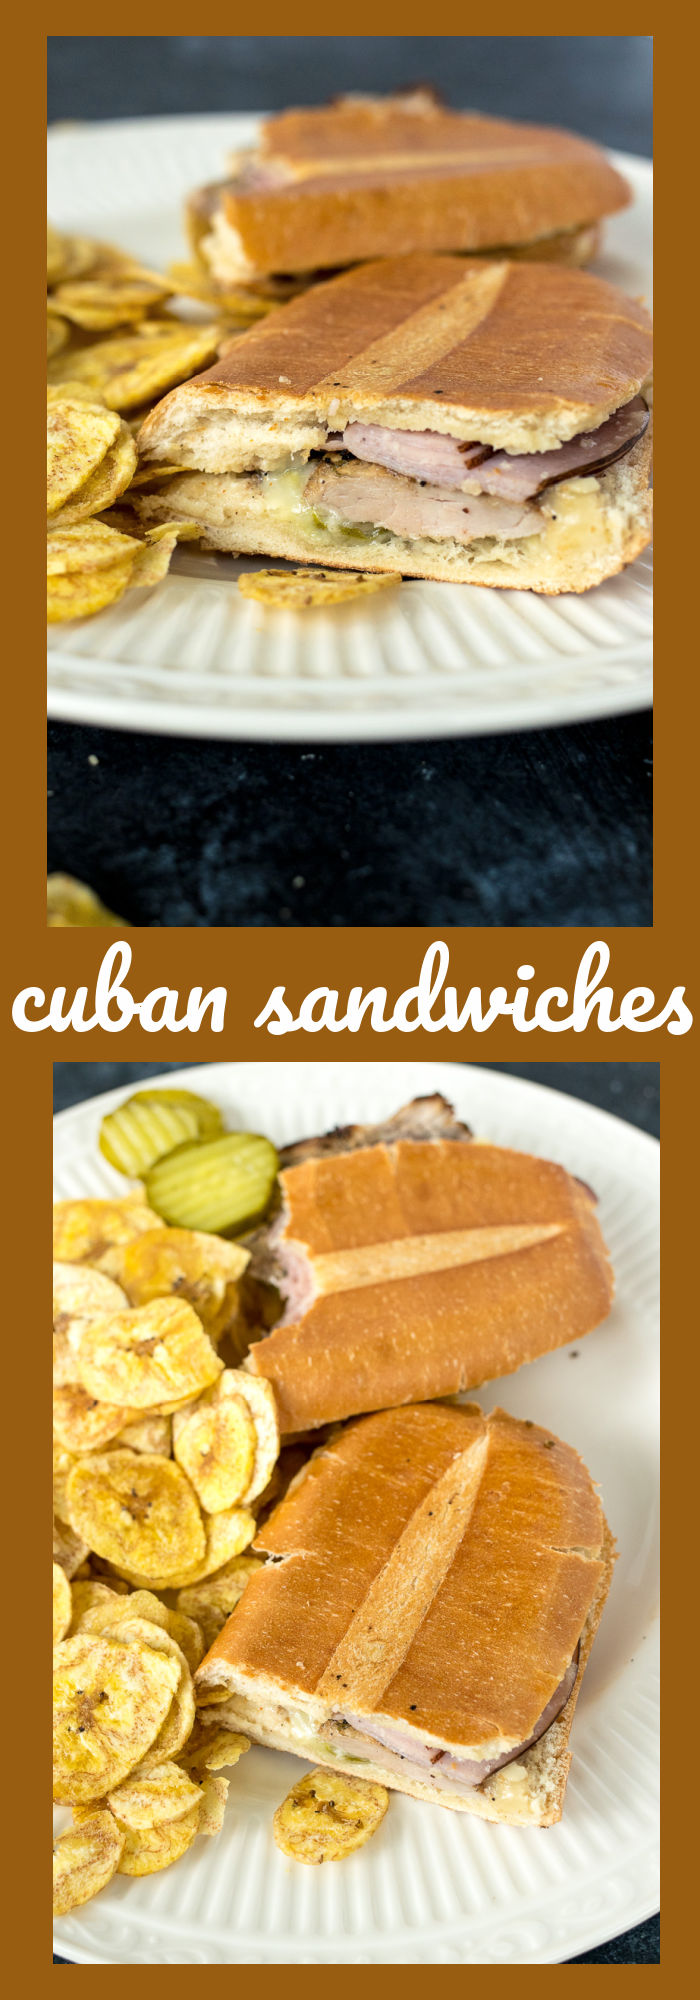 collage of two photos of a Cuban sandwich with descriptive text